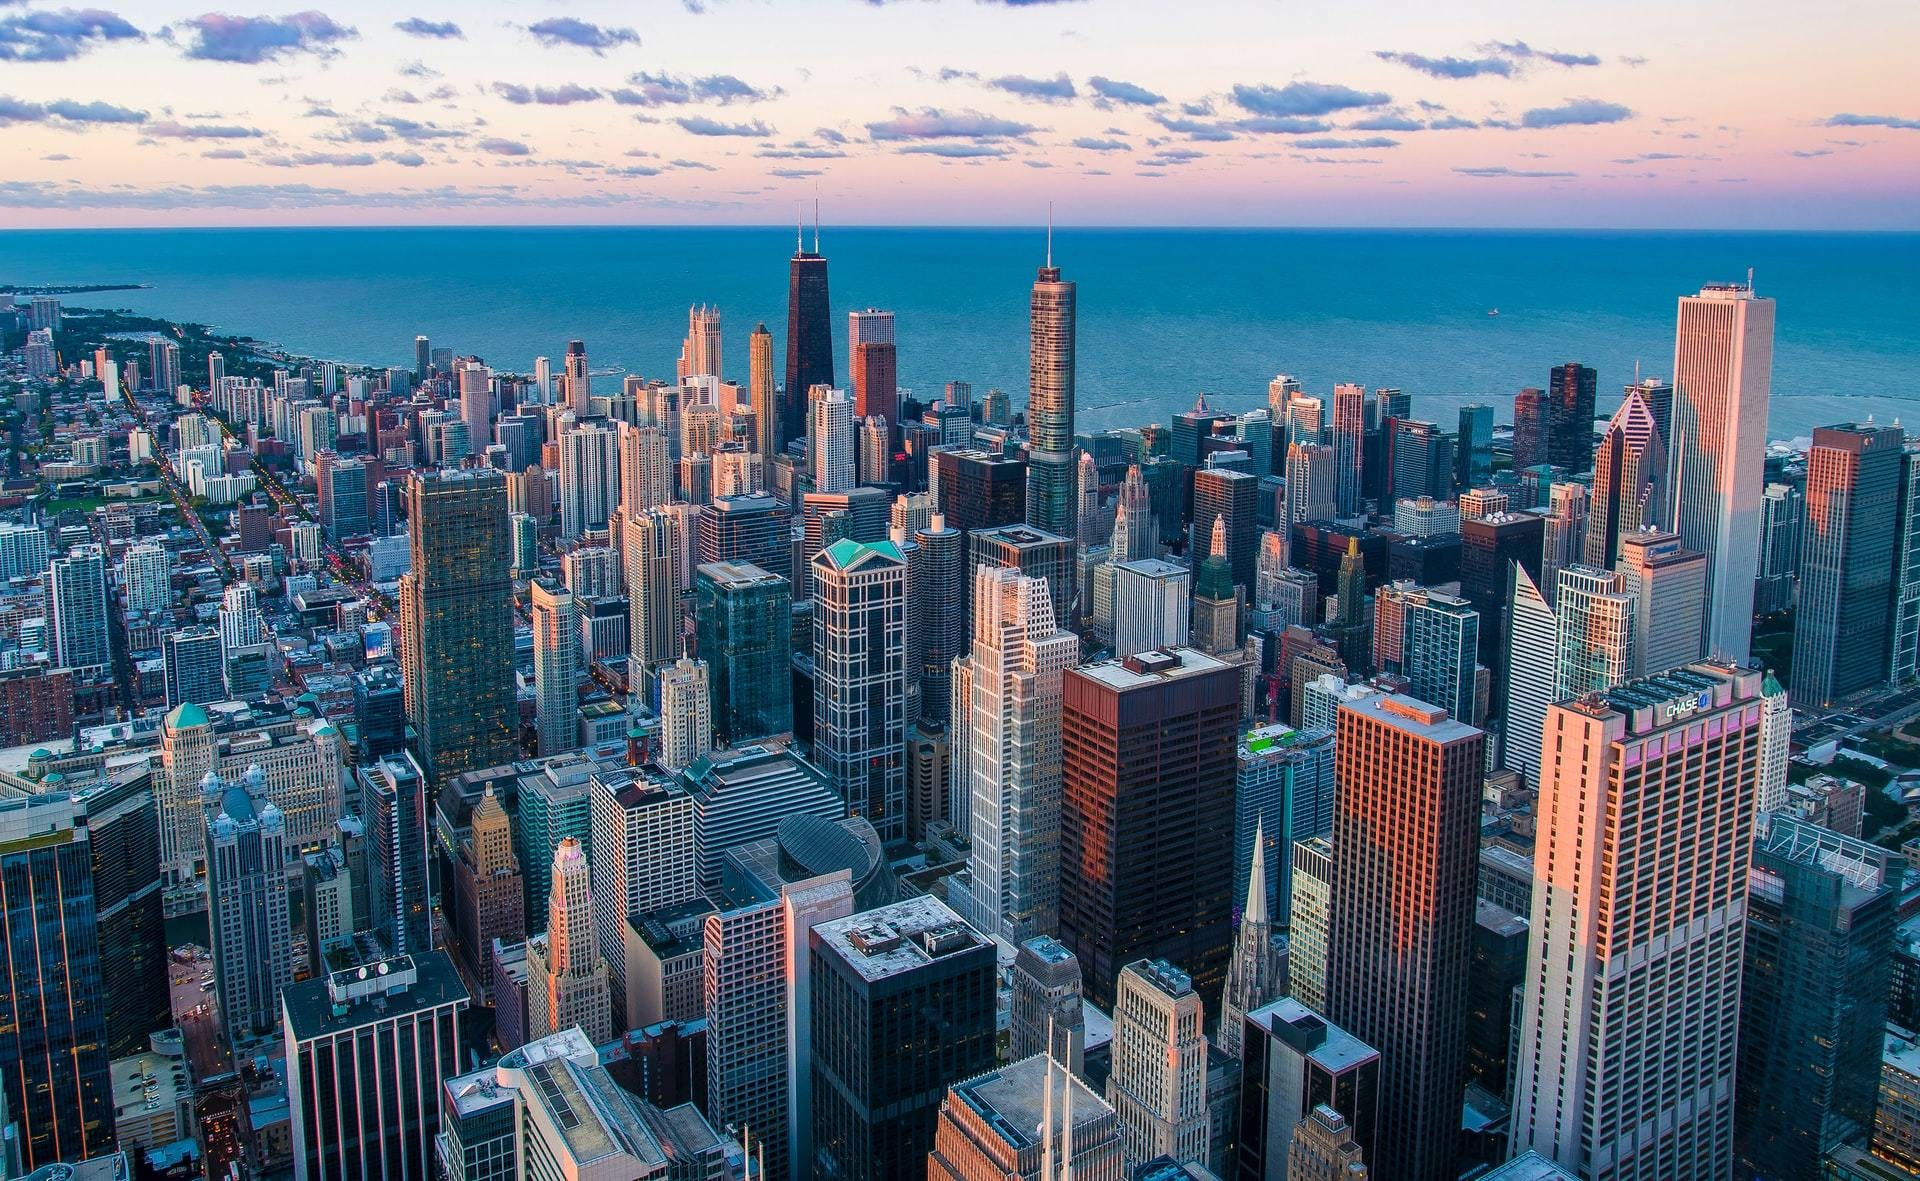 Chicago skyline with Lake Michigan in the background